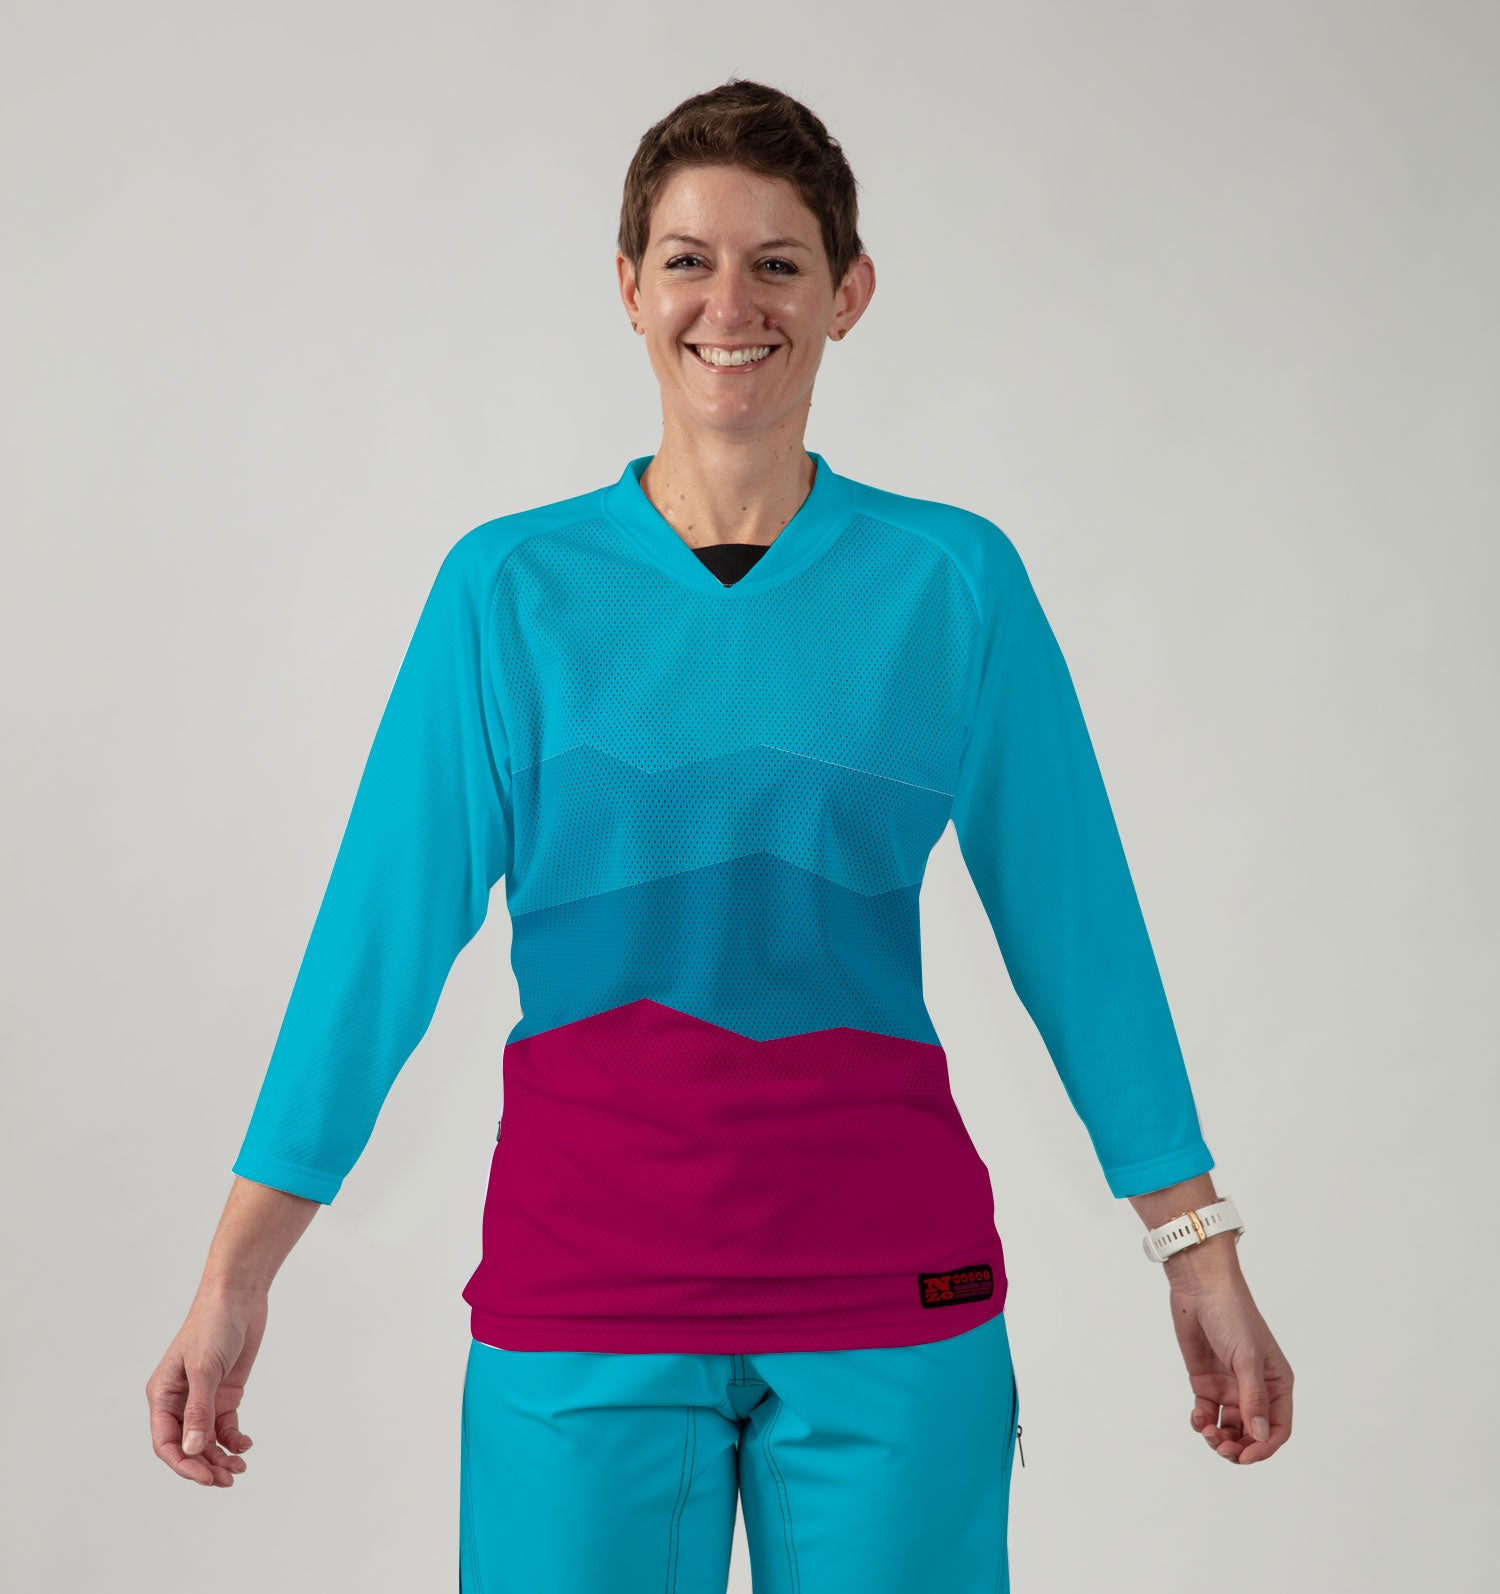 3/4 Women Sleeve MTB Top  - Nzo DESIGN 038_1 Aqua